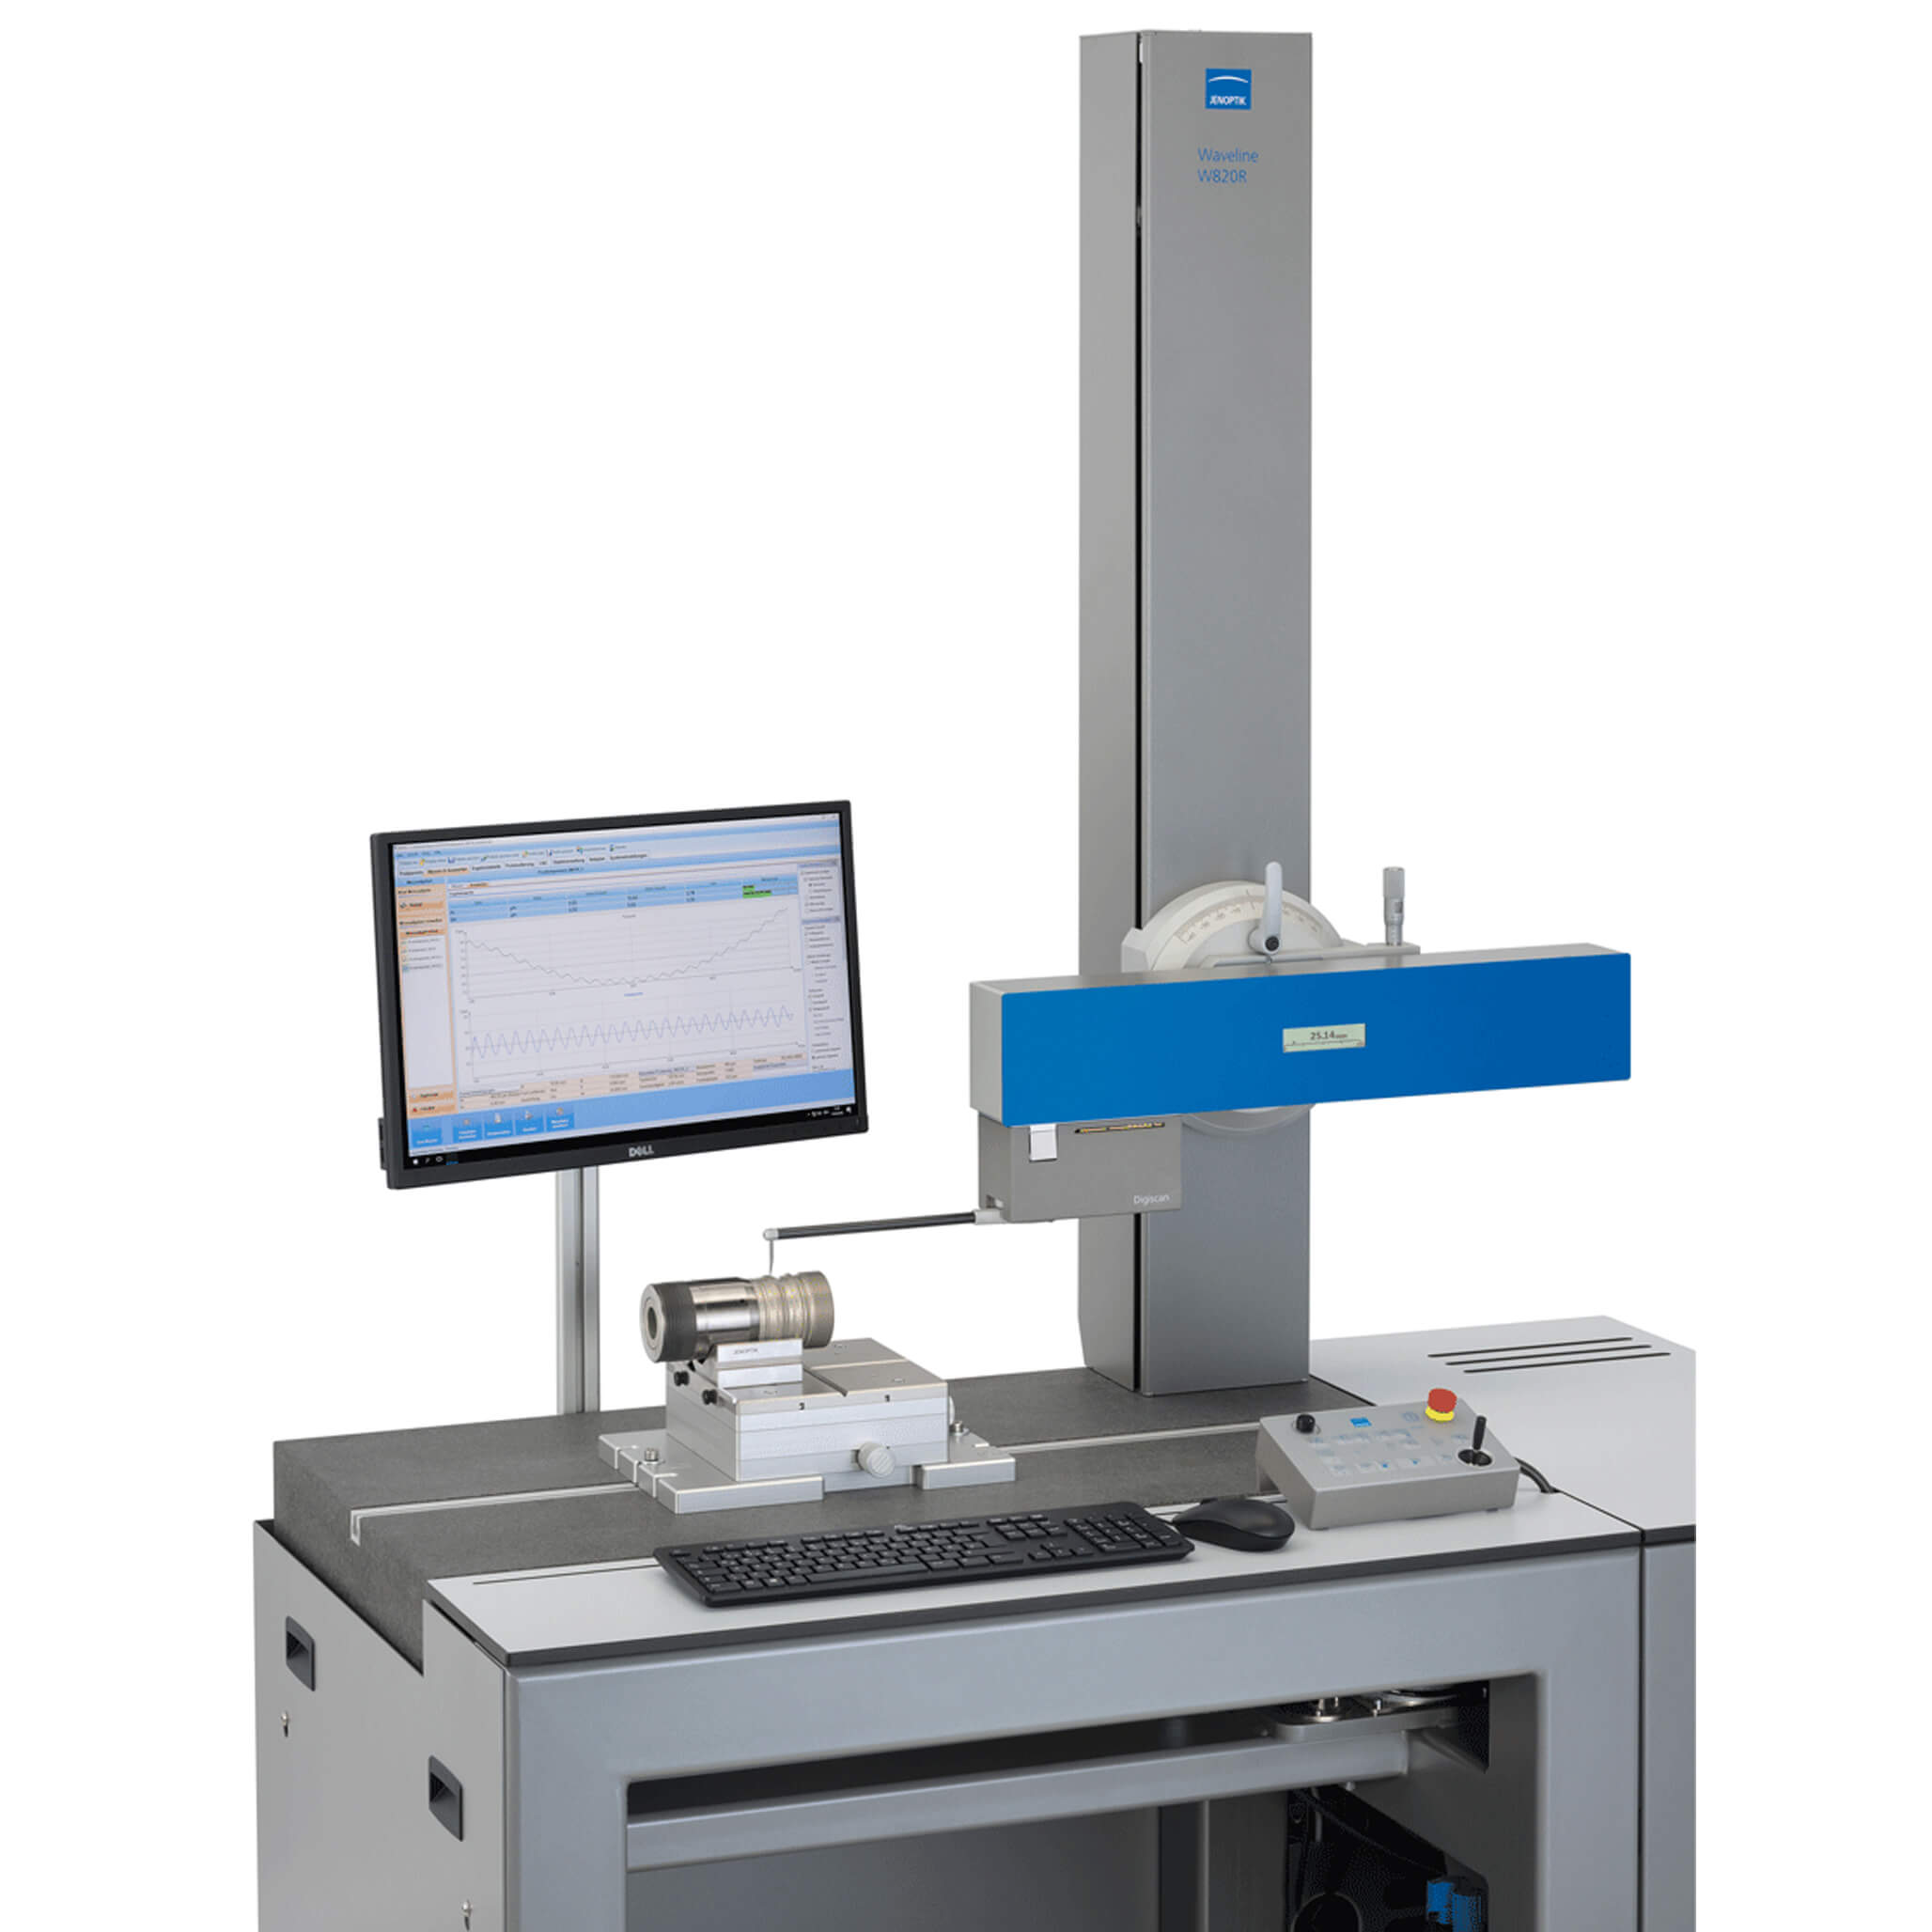 W800 roughness and contour measurement system